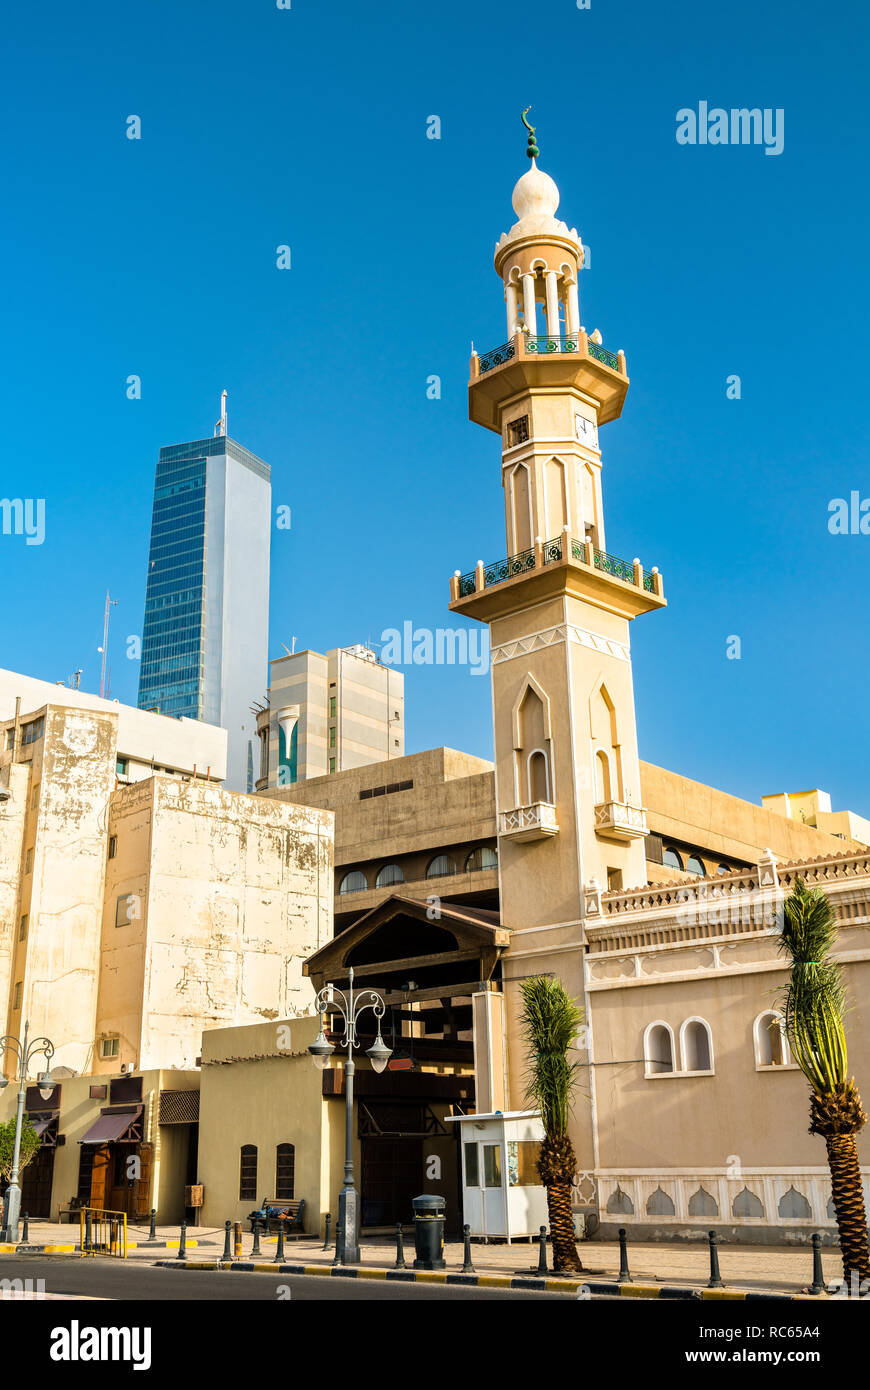 The Souq Grand Mosque in Kuwait City - Stock Image